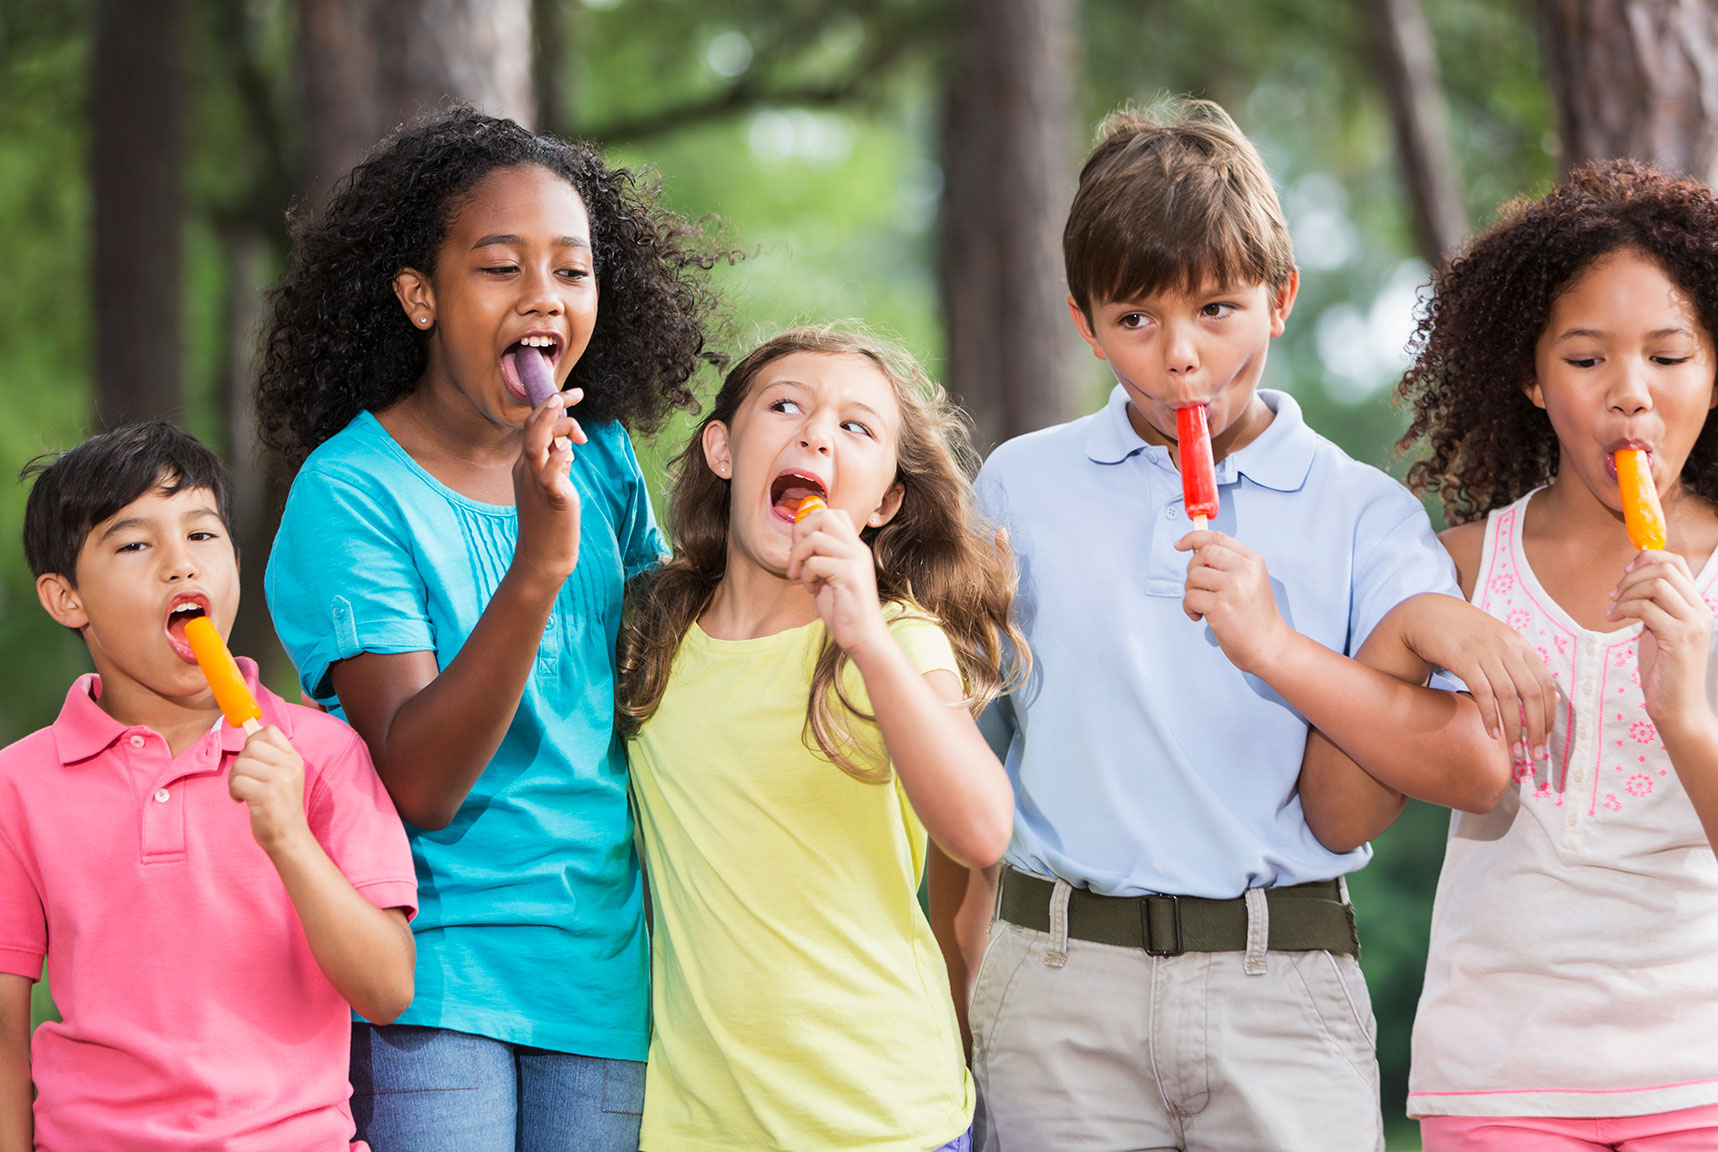 kids with Popsicle